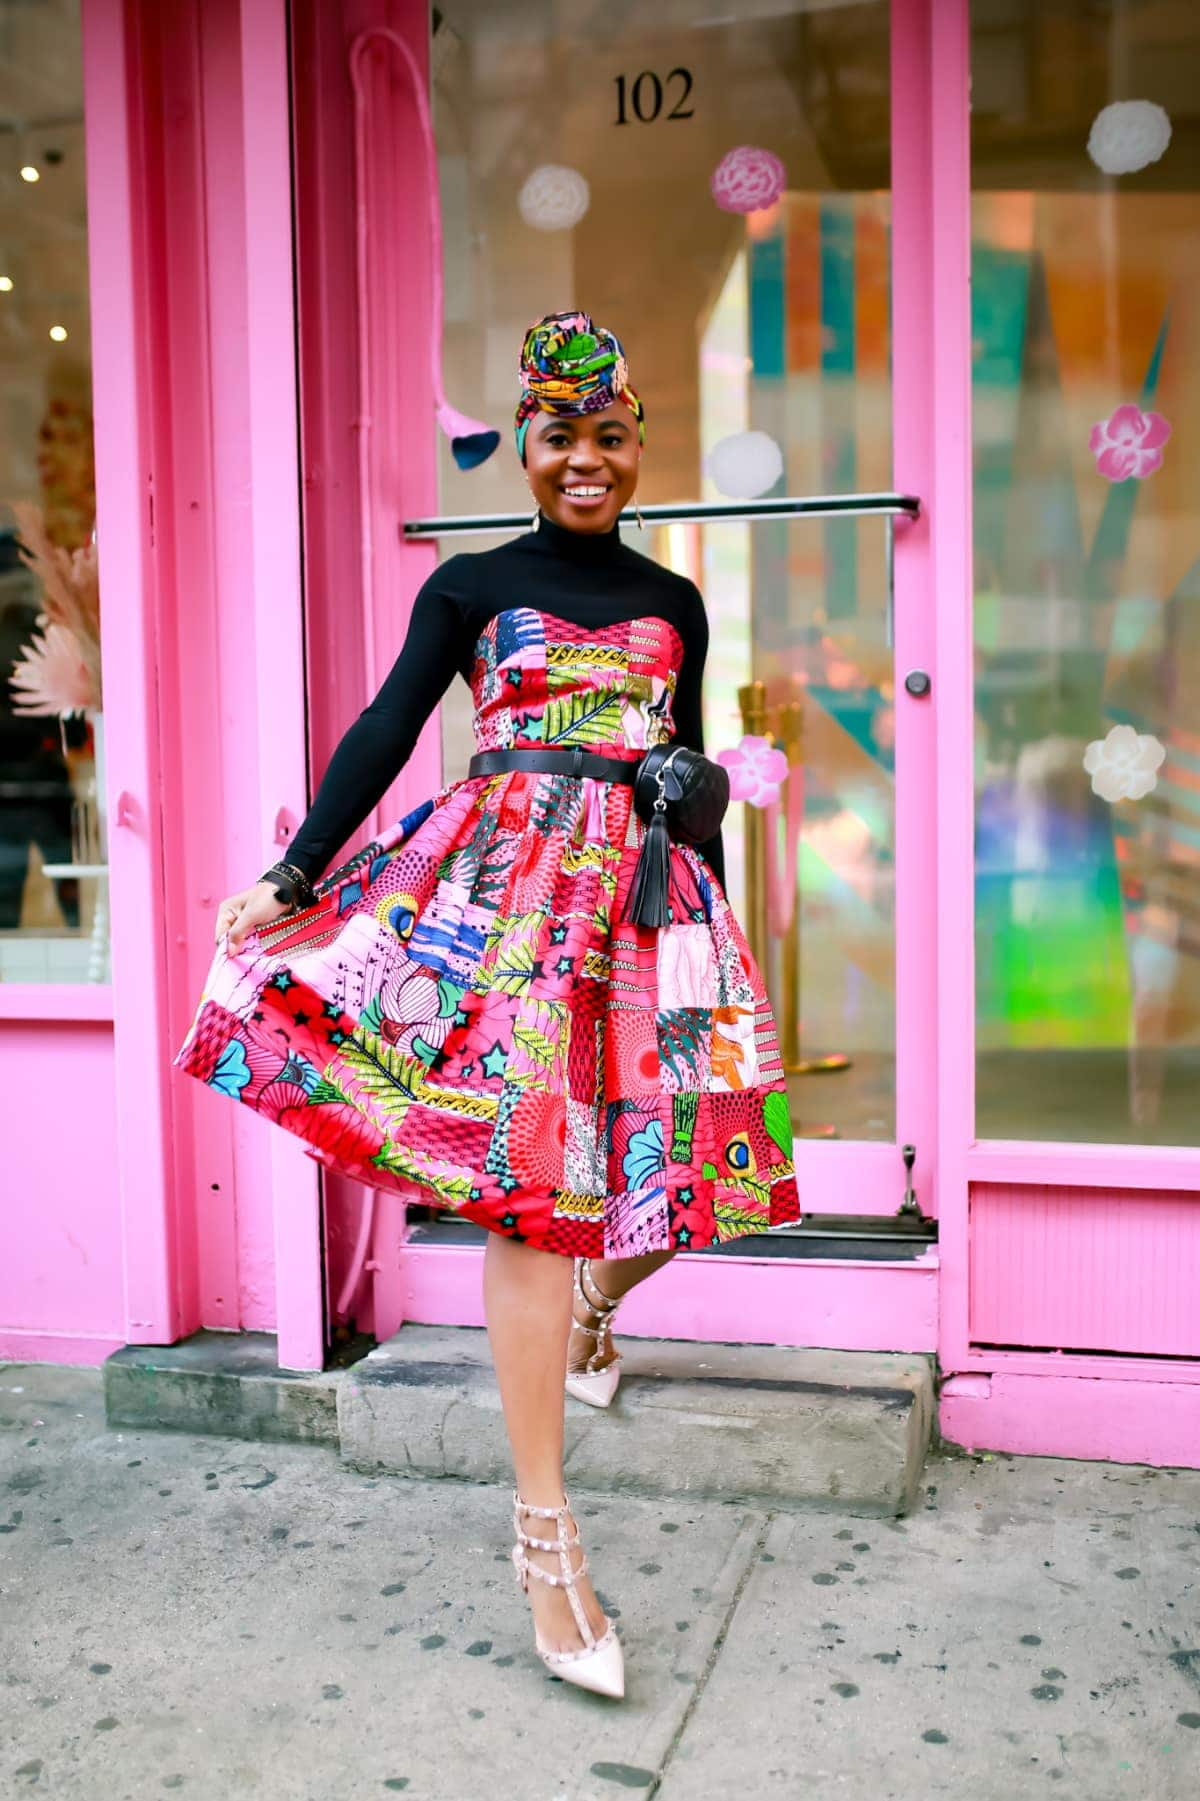 This is the only ankara midi dress you need this year to turn heads at prom, weddings, graduation, and even New York Fashion Week. Here's where to get this breathtaking ankara dress.